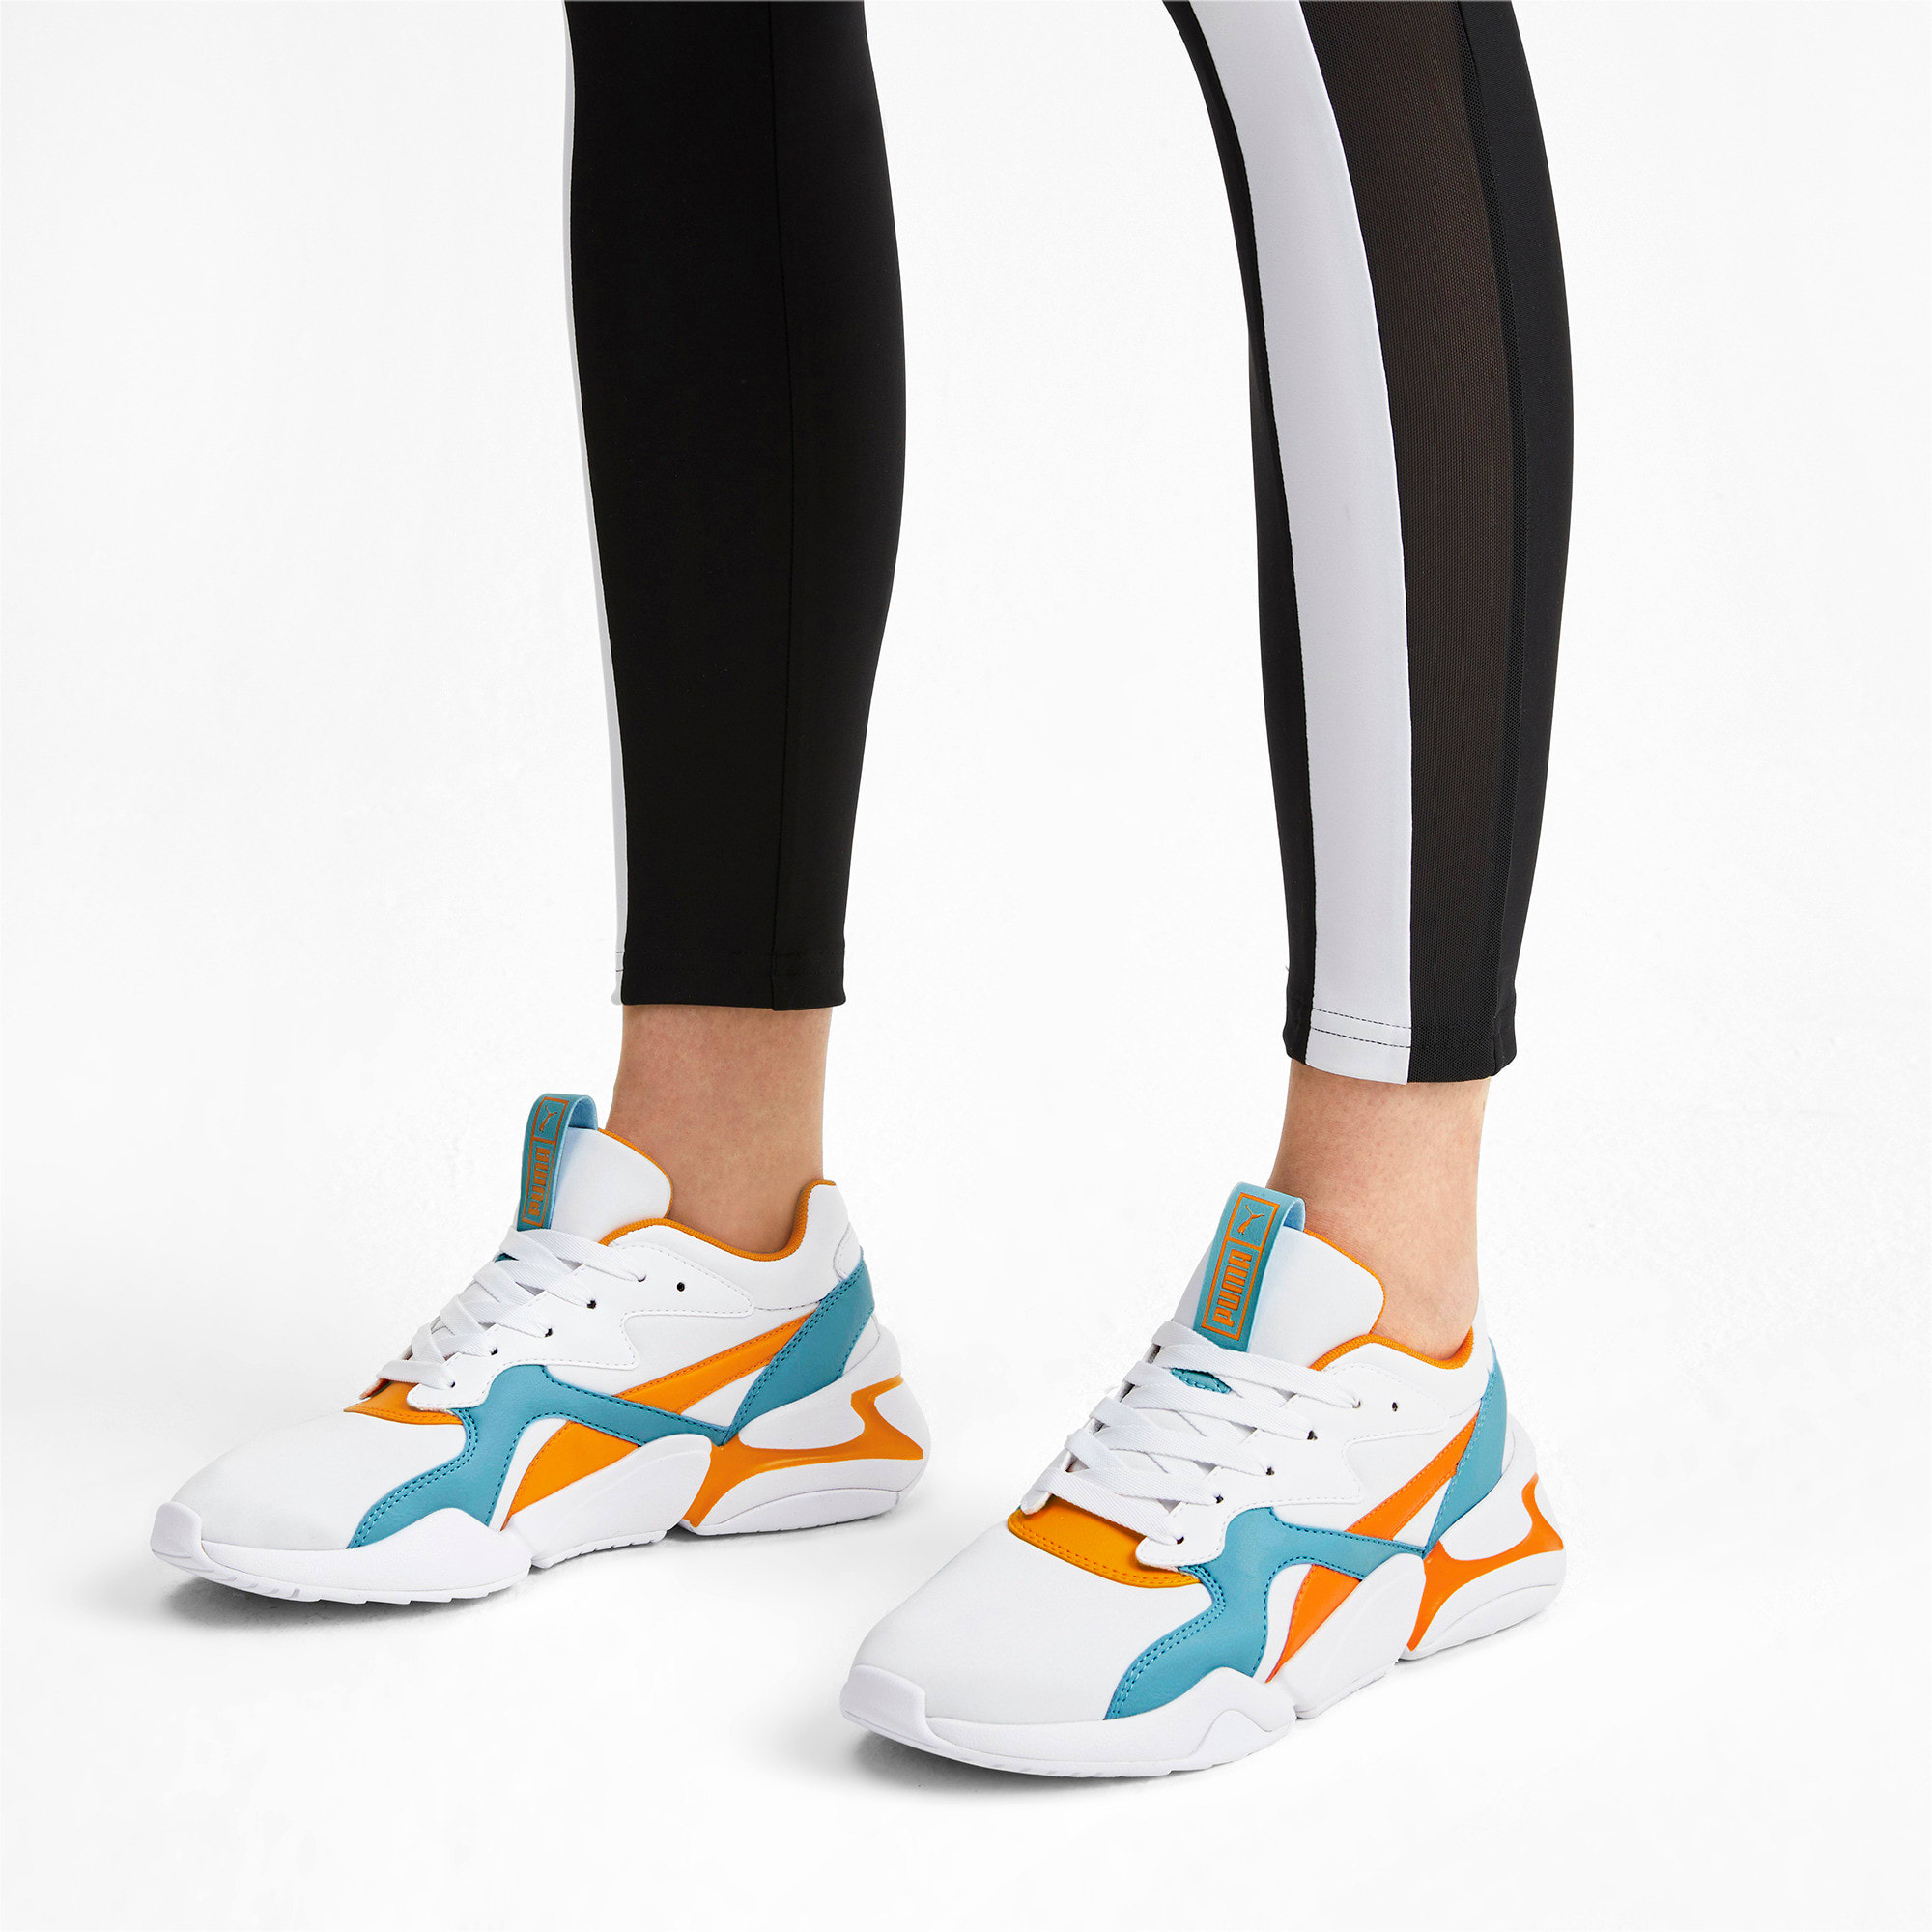 Thumbnail 2 of Nova Women's Trainers, Puma White-Milky Blue, medium